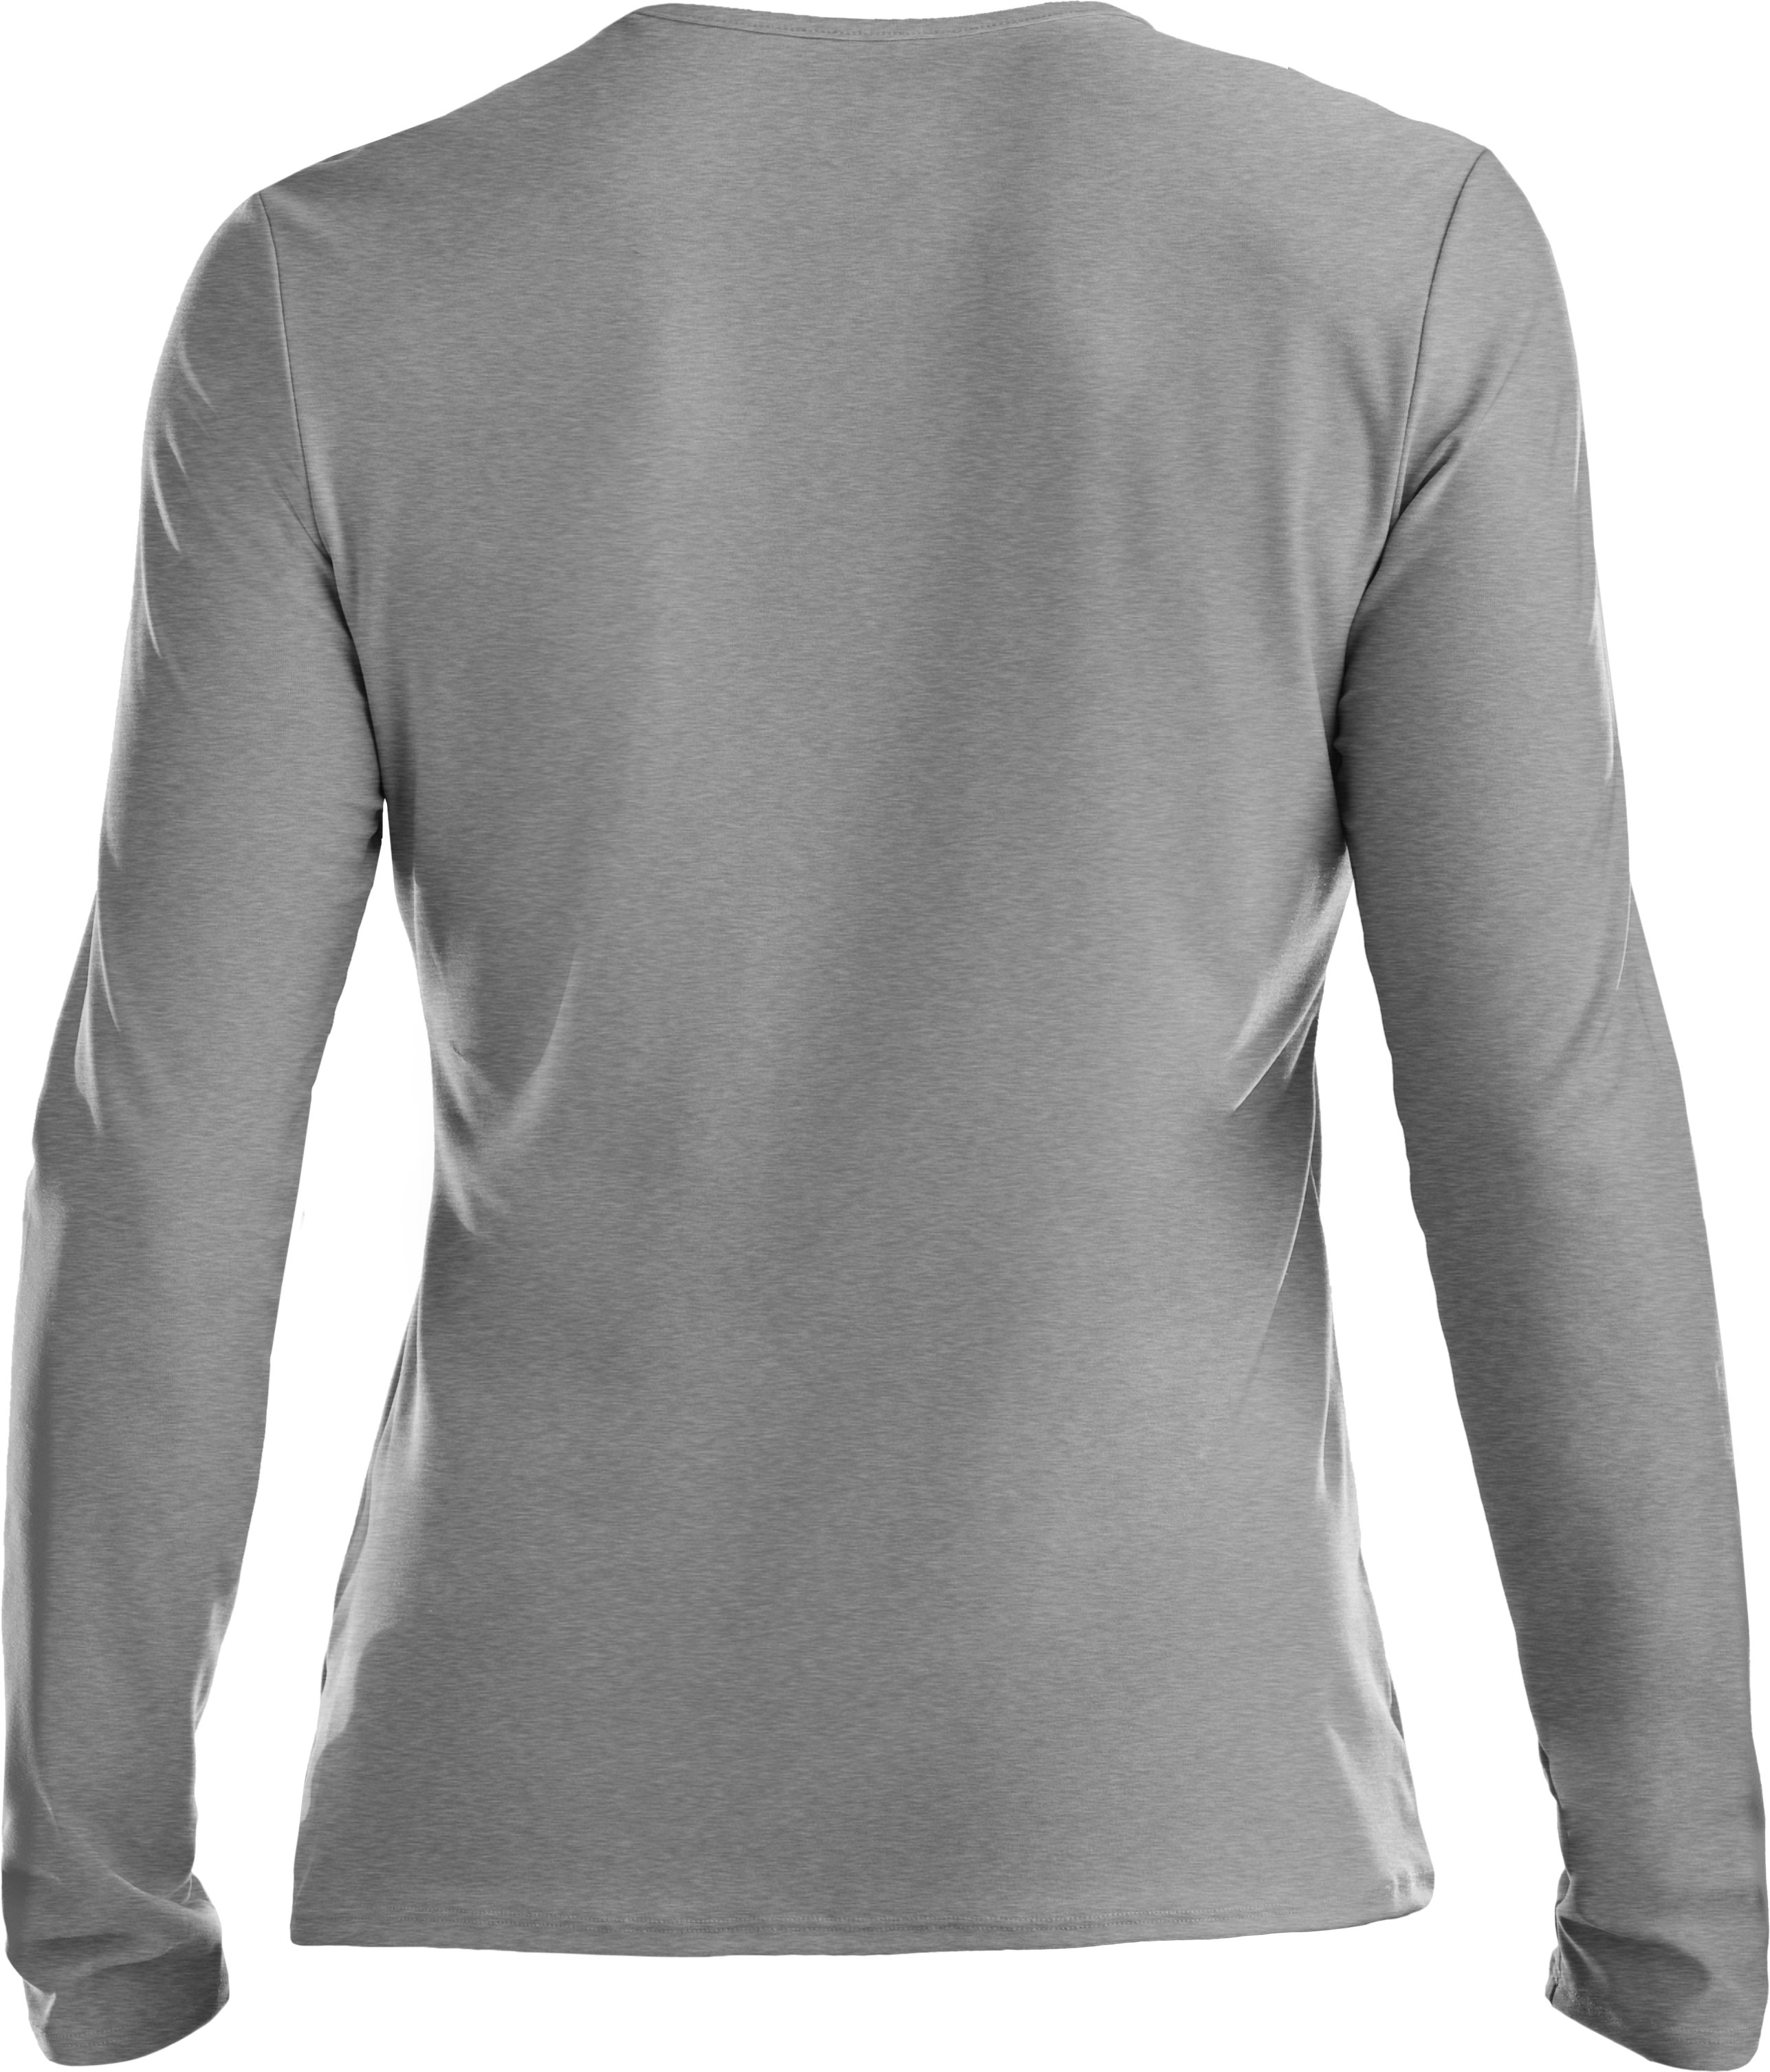 Women's Locker Long Sleeve T-Shirt, True Gray Heather, undefined